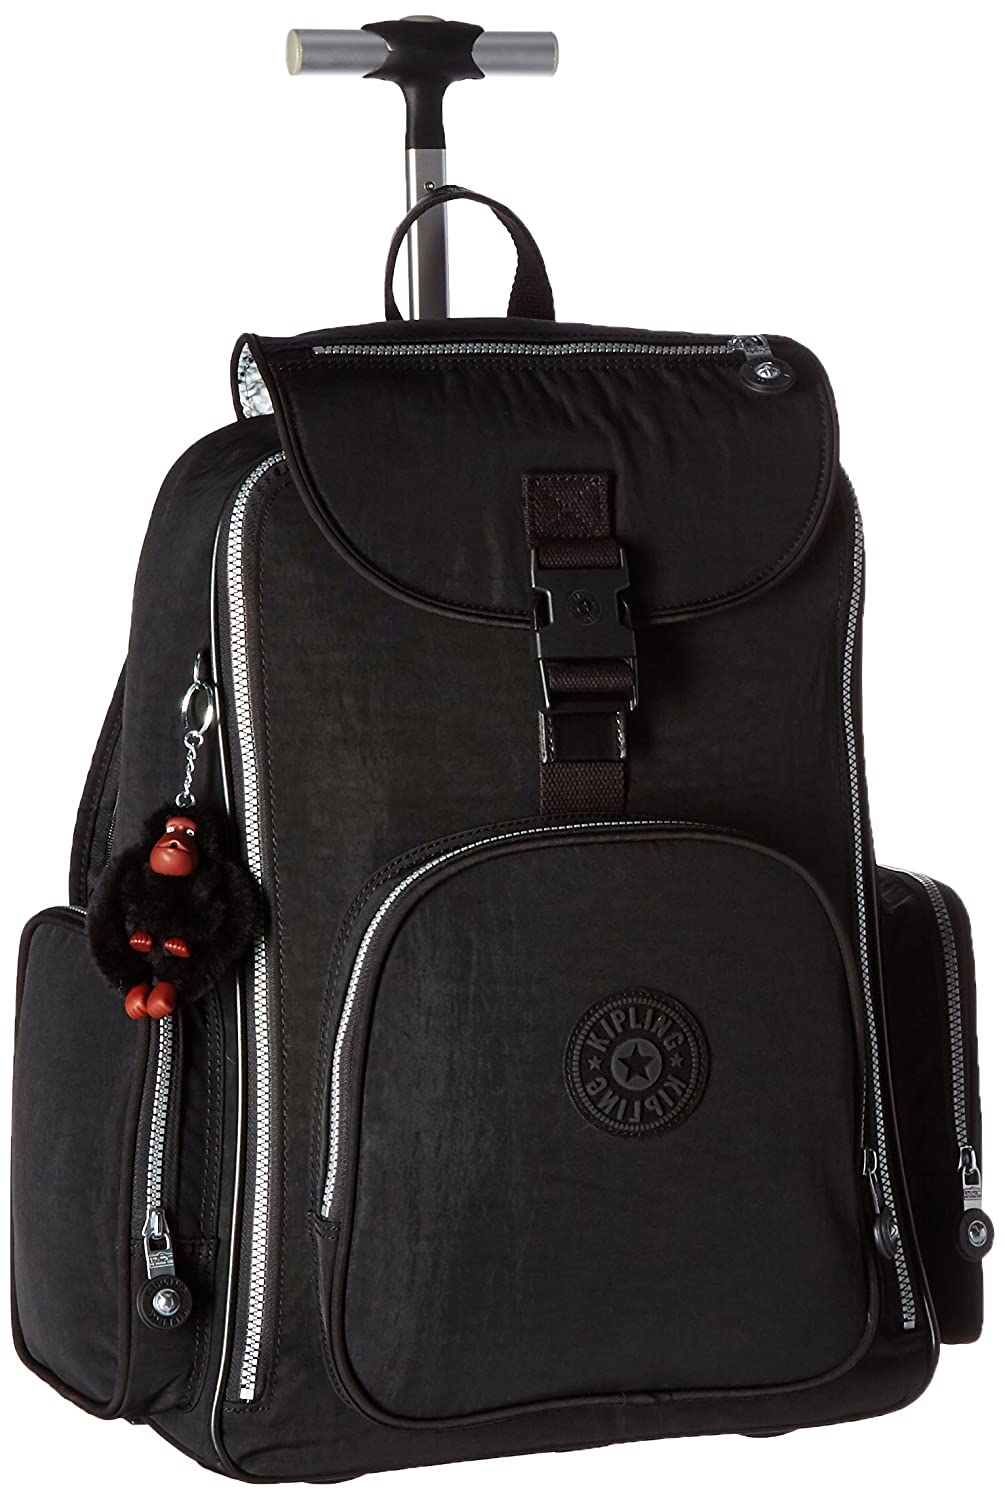 Amazon.com  Kipling Luggage Alcatraz Wheeled Backpack with Laptop  Protection, Black, One Size  Shoes 1d5ff5bdf6